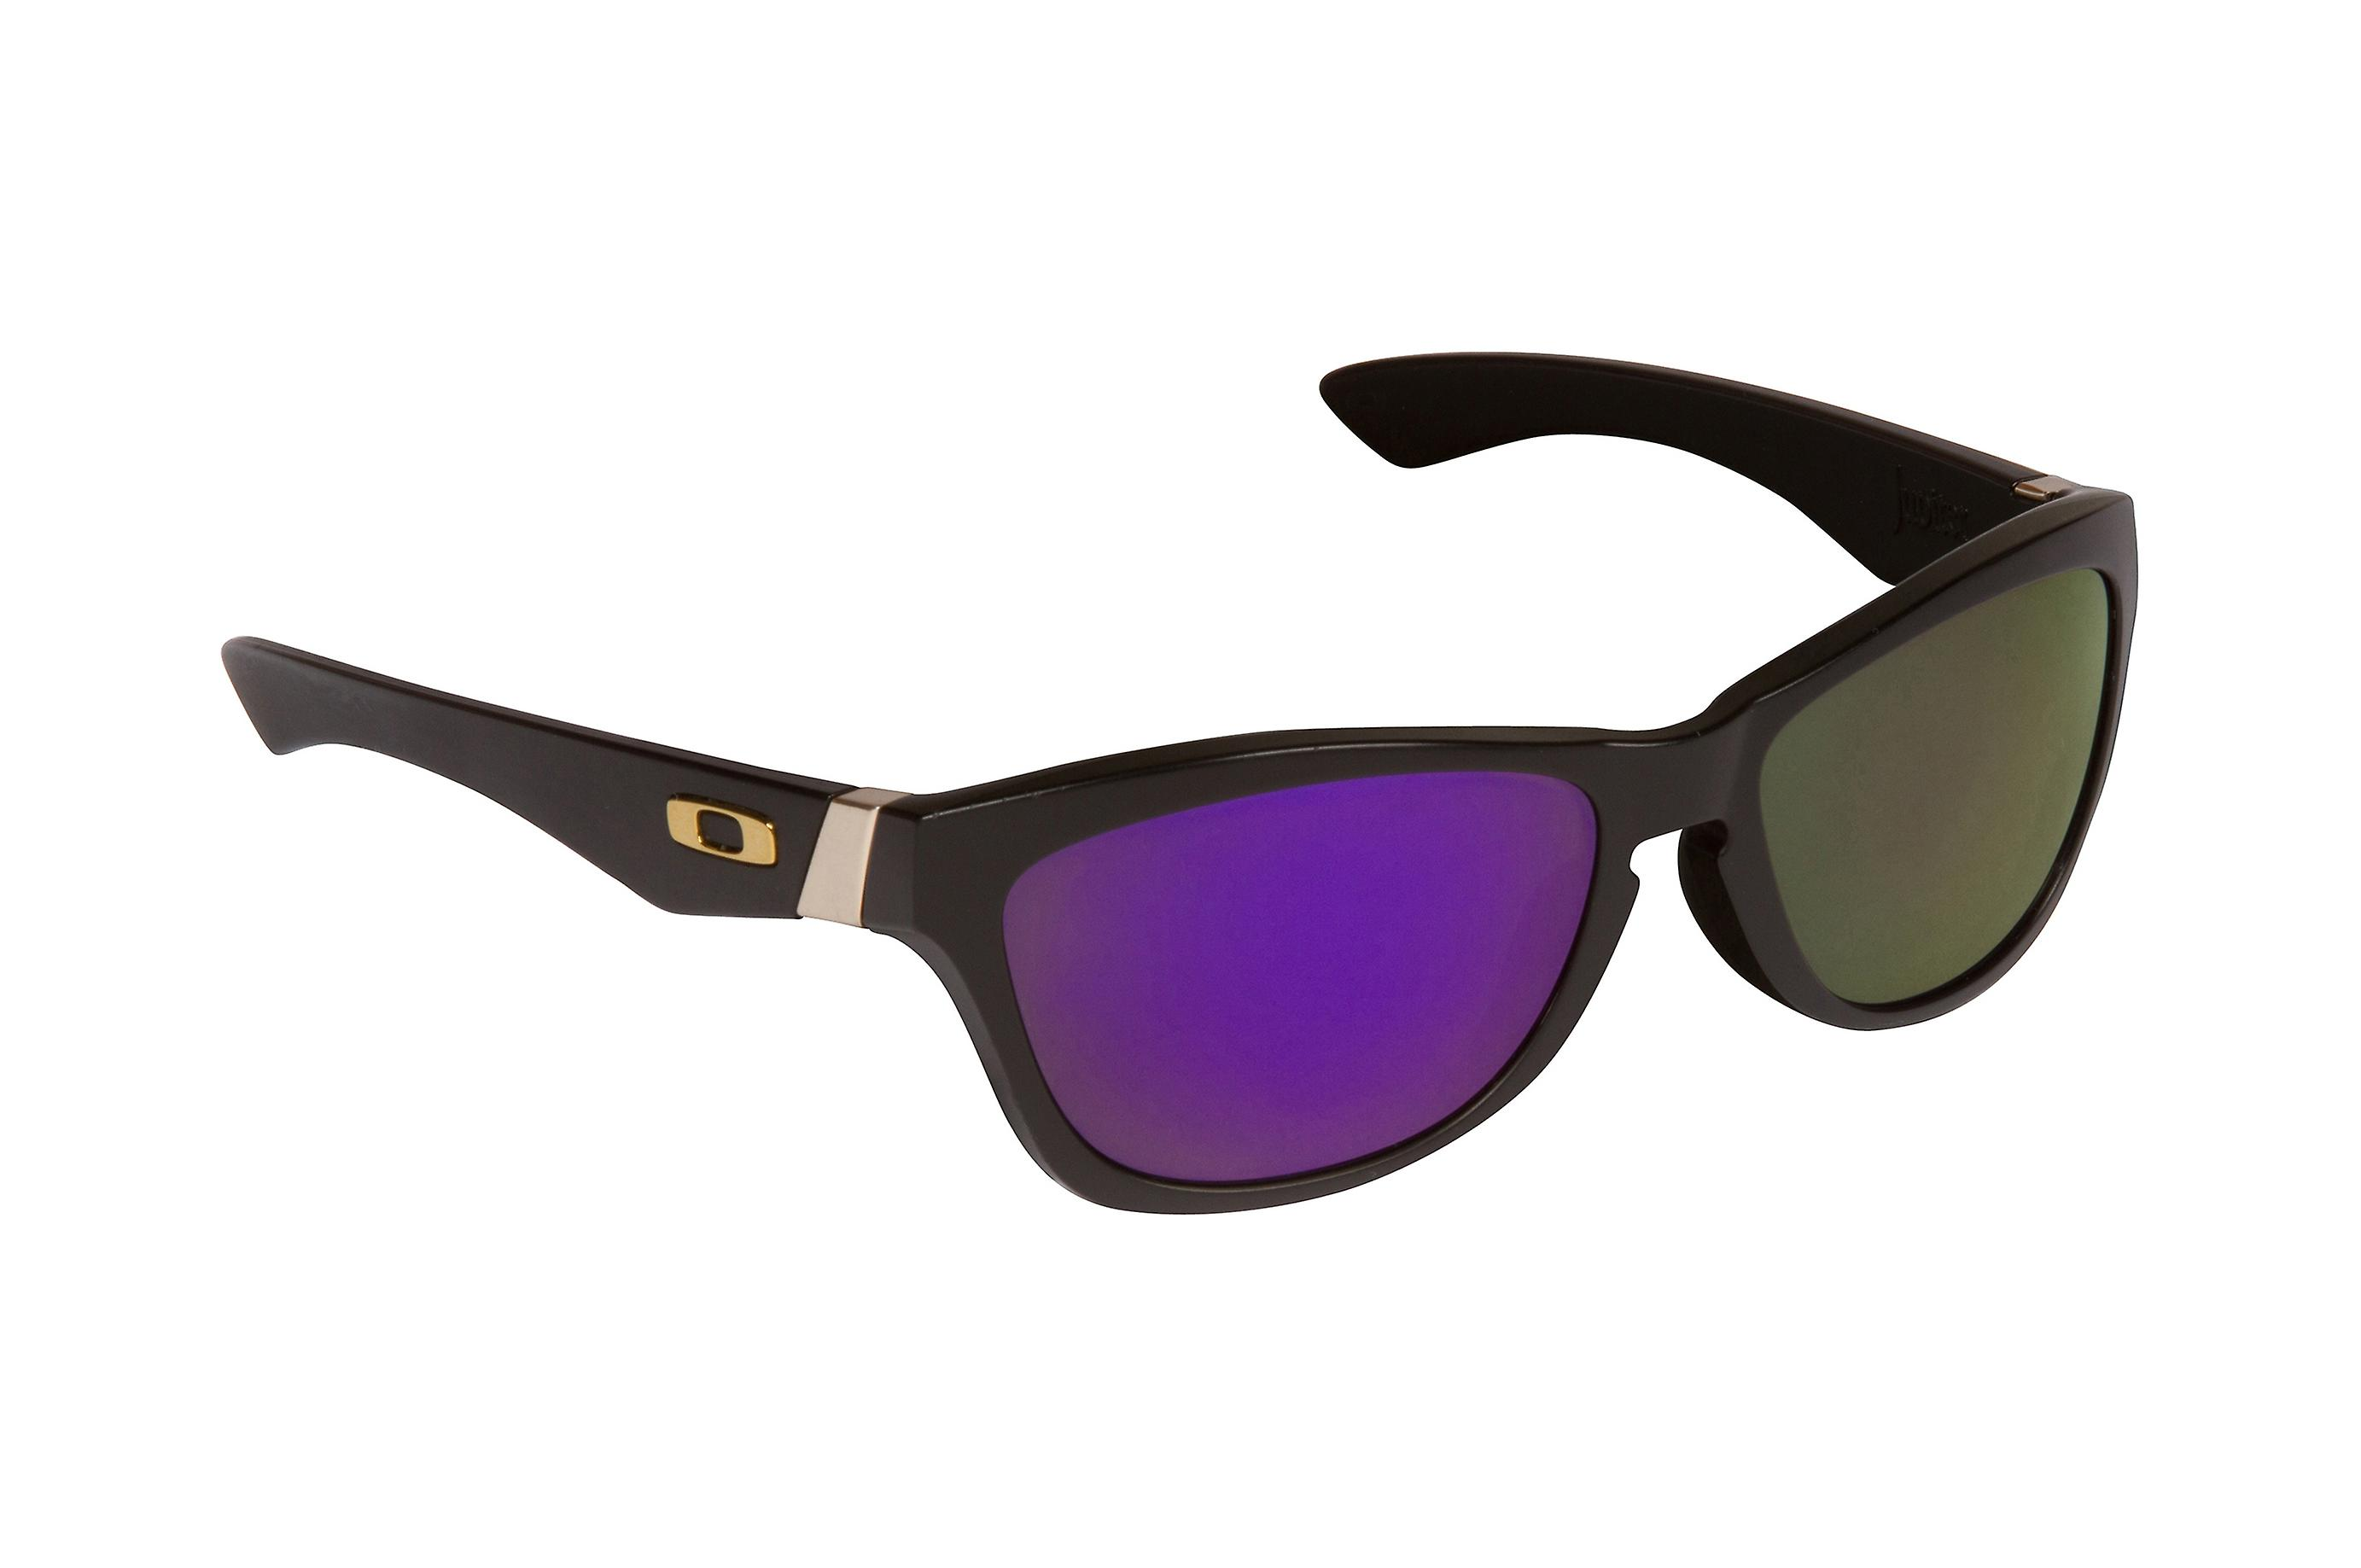 Best SEEK Replacement Lenses for Oakley Sunglasses JUPITER Grey Purple Mirror